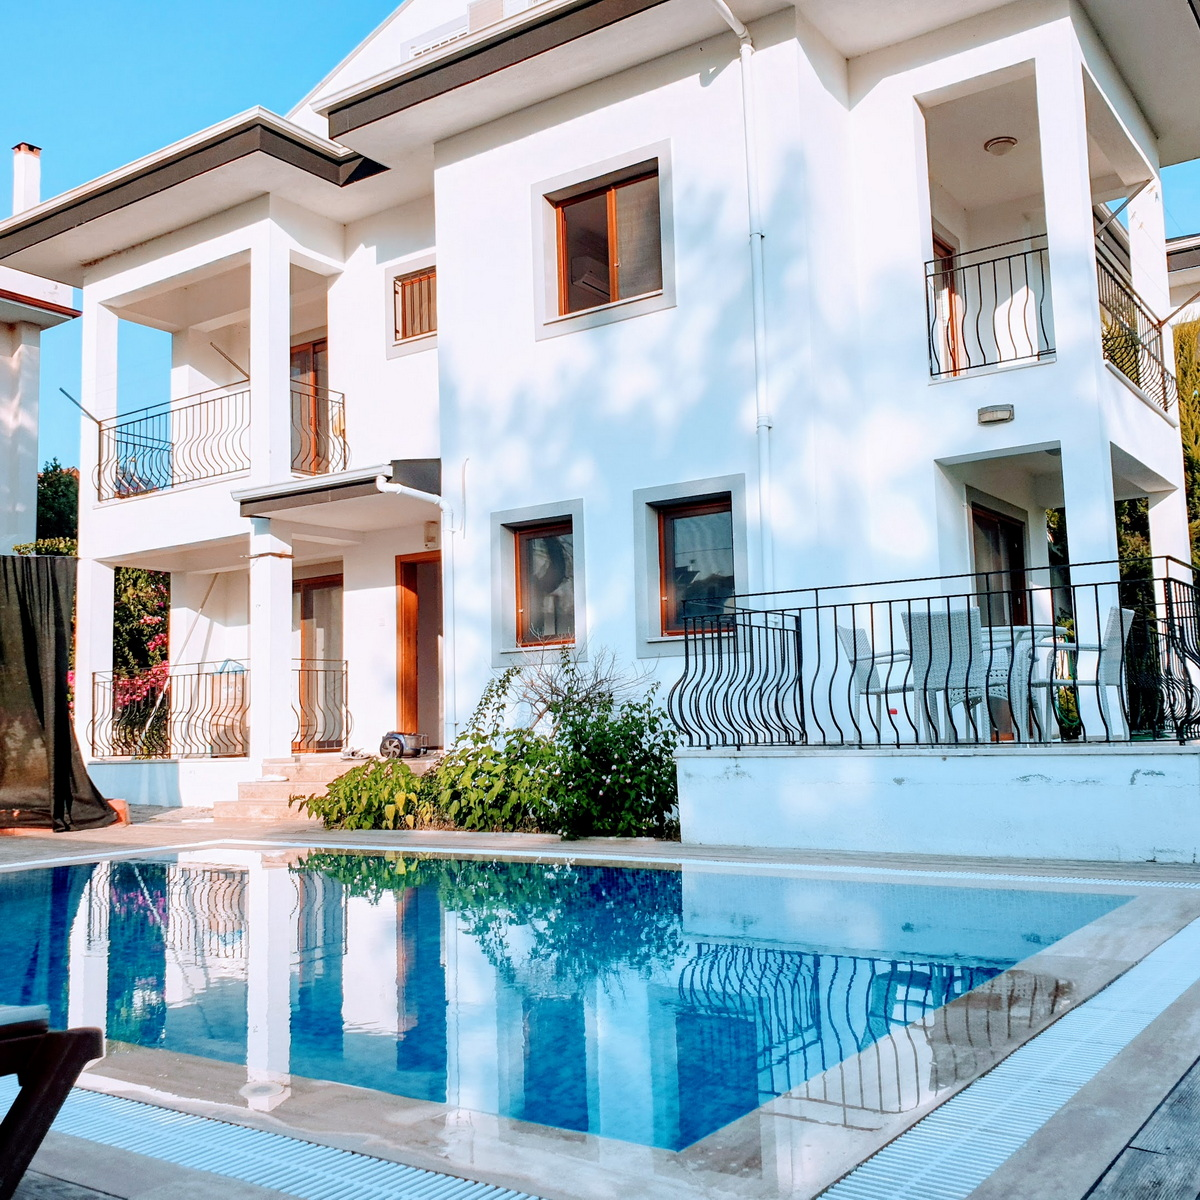 3 Bedroom Semi Detached Villa with Private Pool For Sale